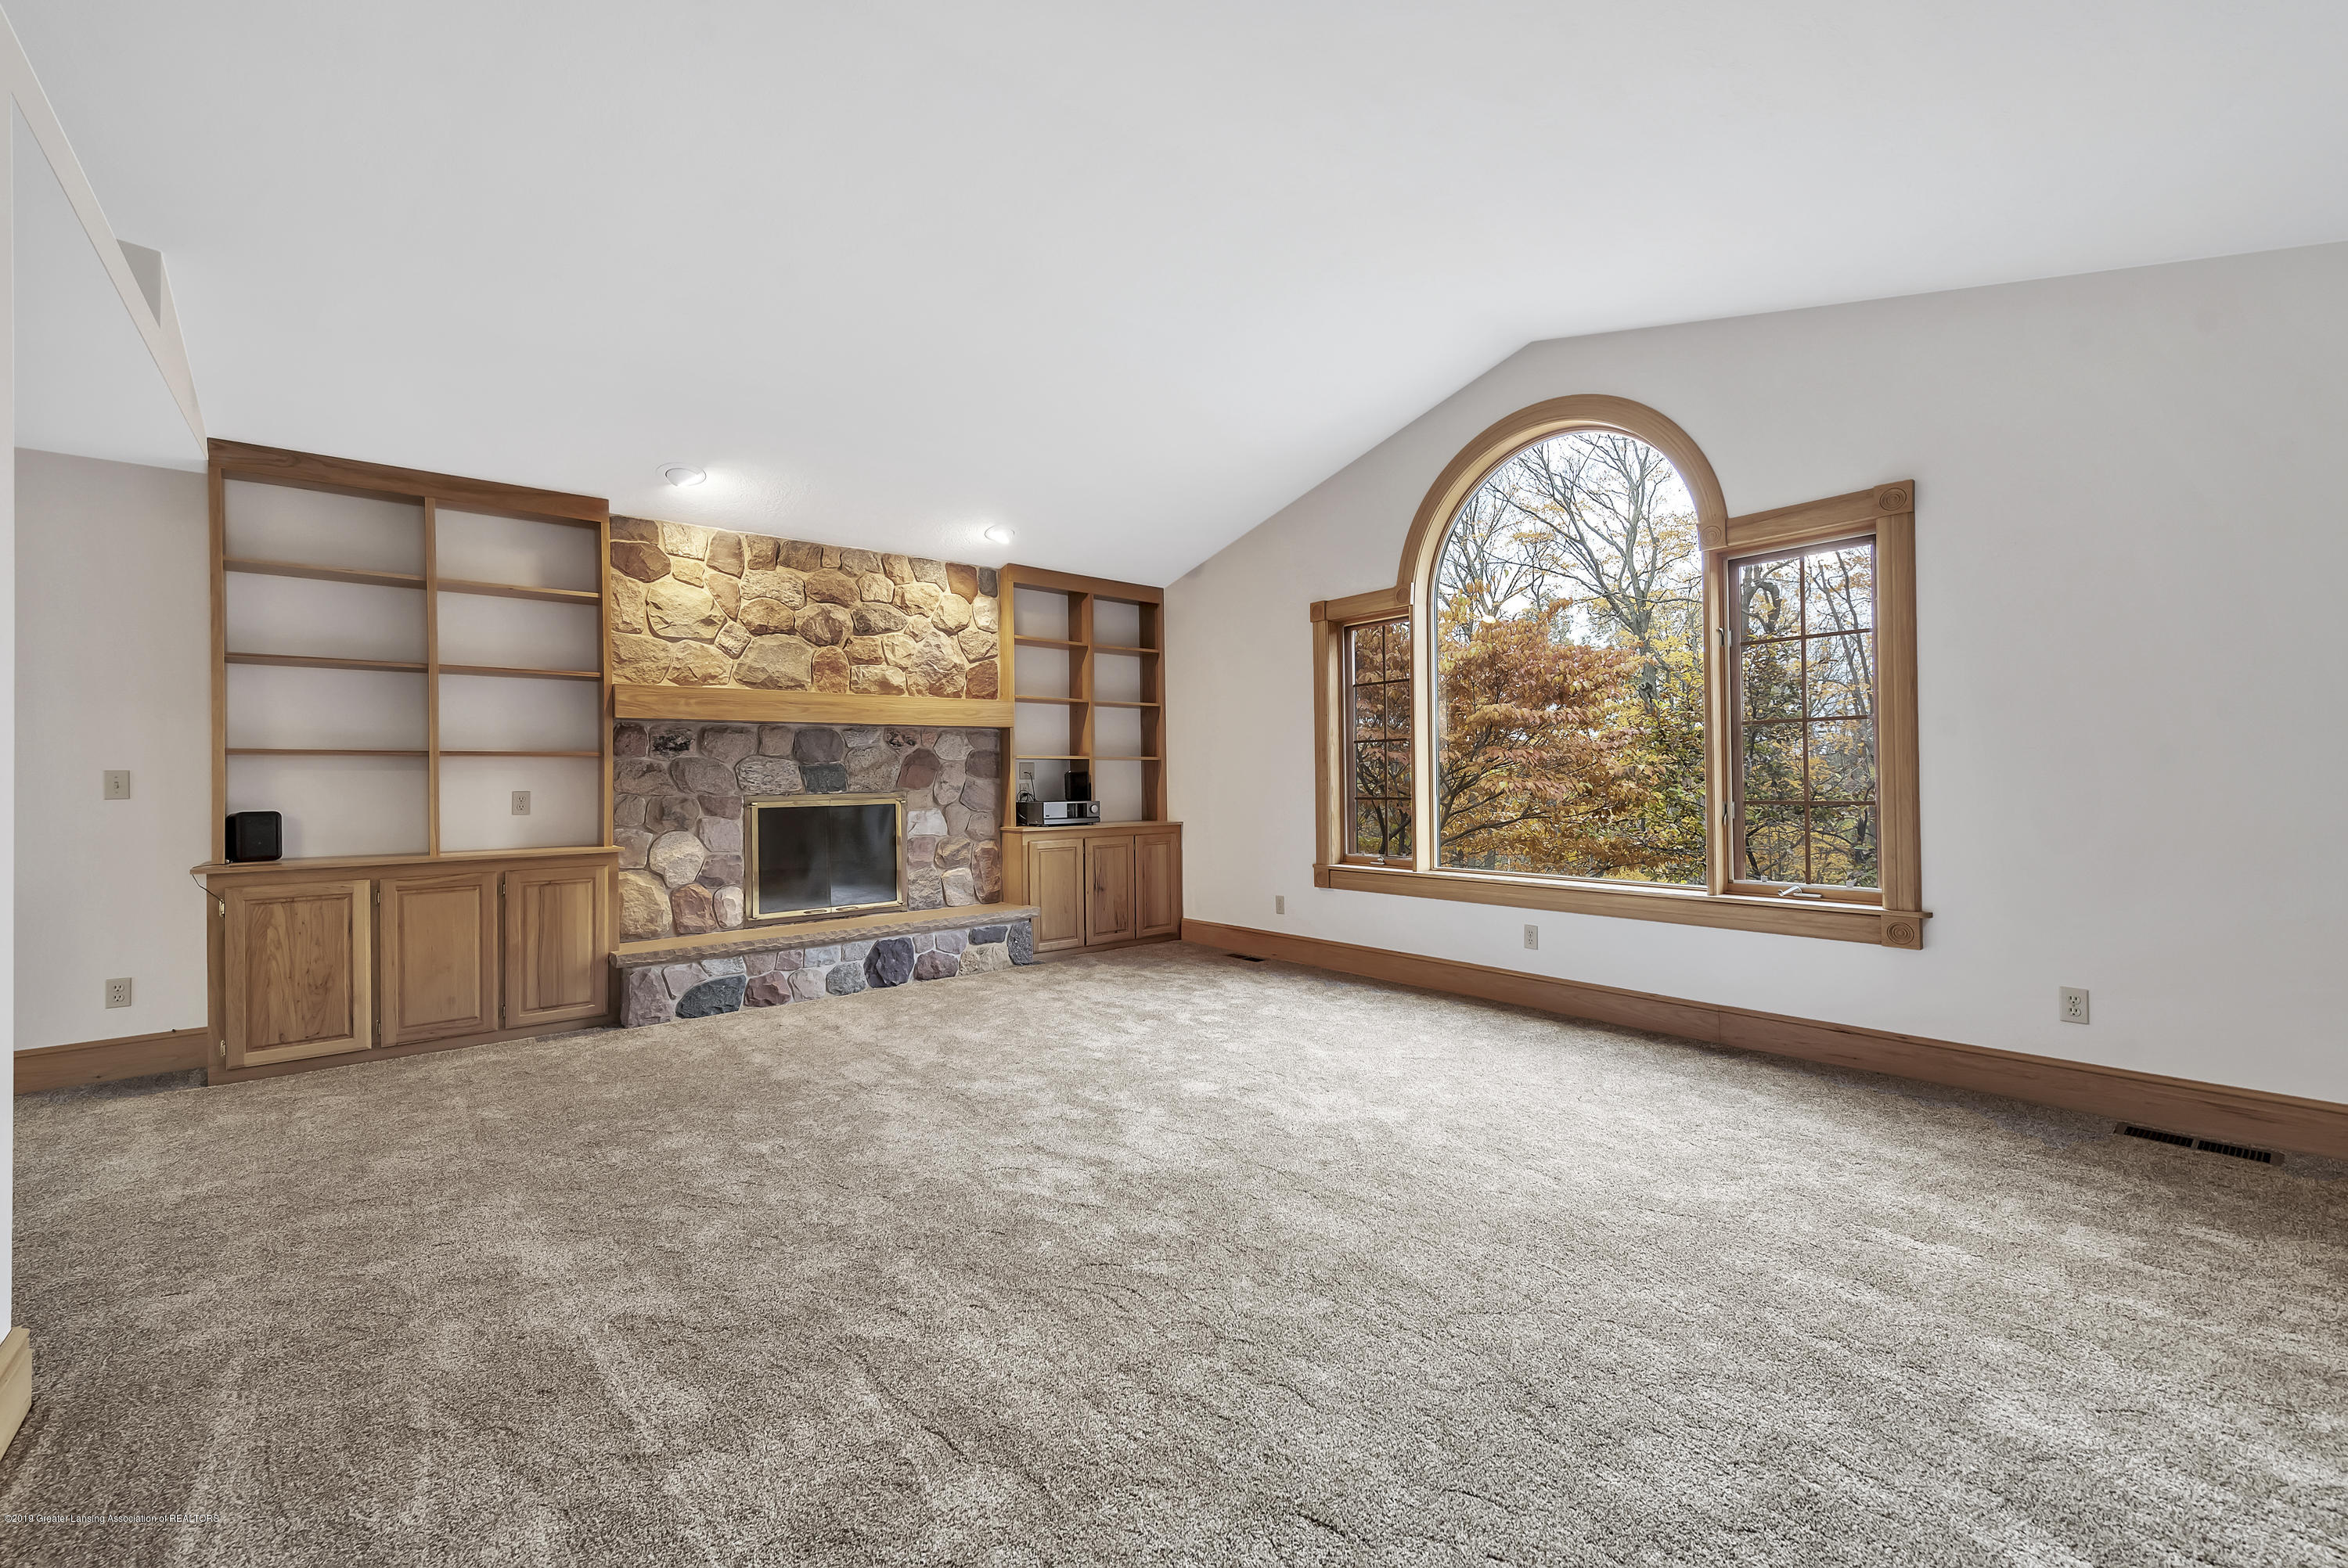 10865 Barnes Rd - 10865-Barnes-Rd-WindowStill-Real-Estate- - 7